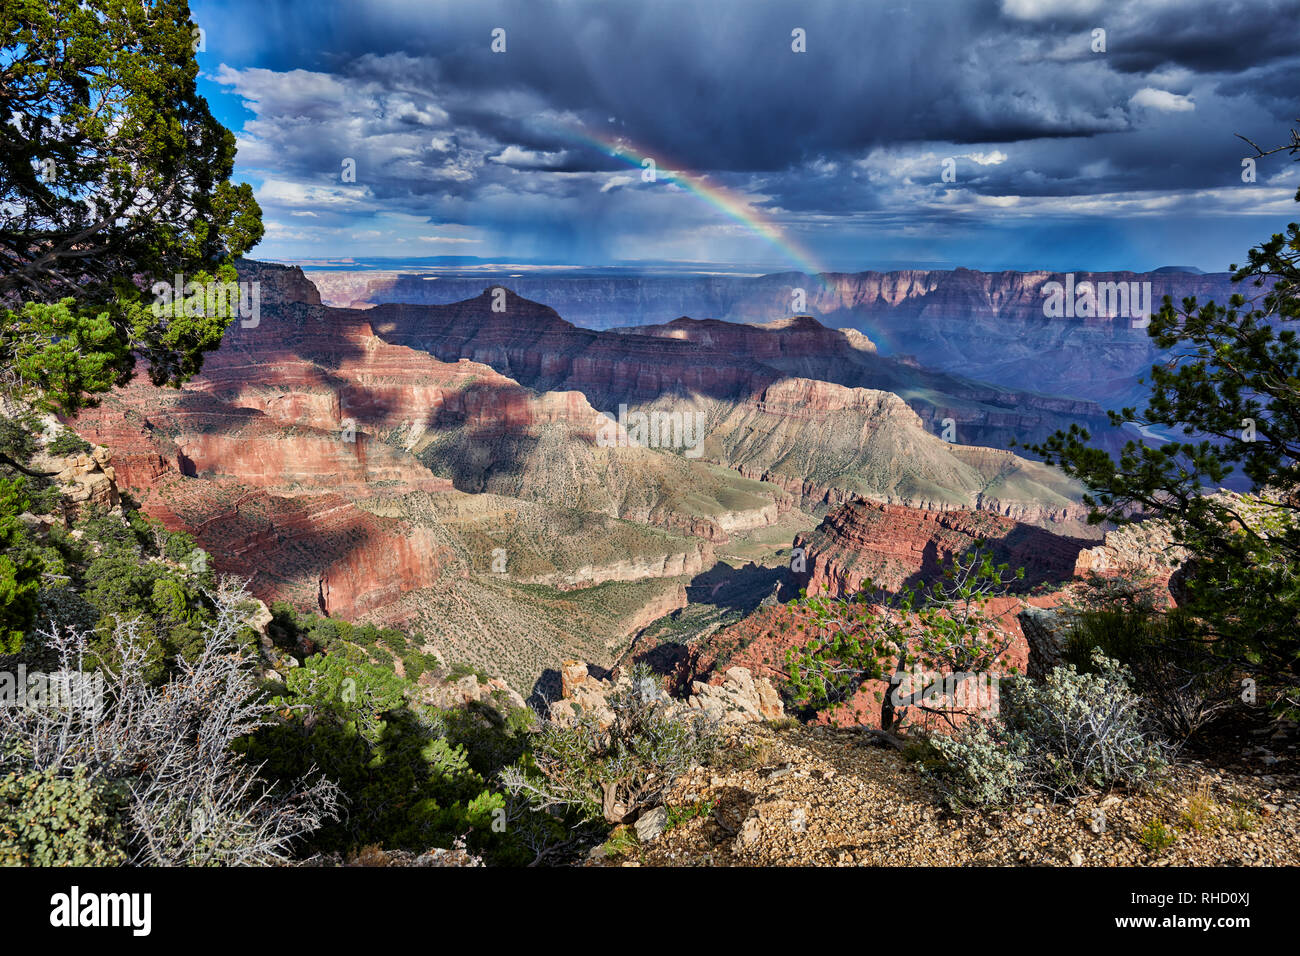 thunderstorm and rainbow over Grand Canyon, Cape Royal viewpoint, Arizona, USA - Stock Image